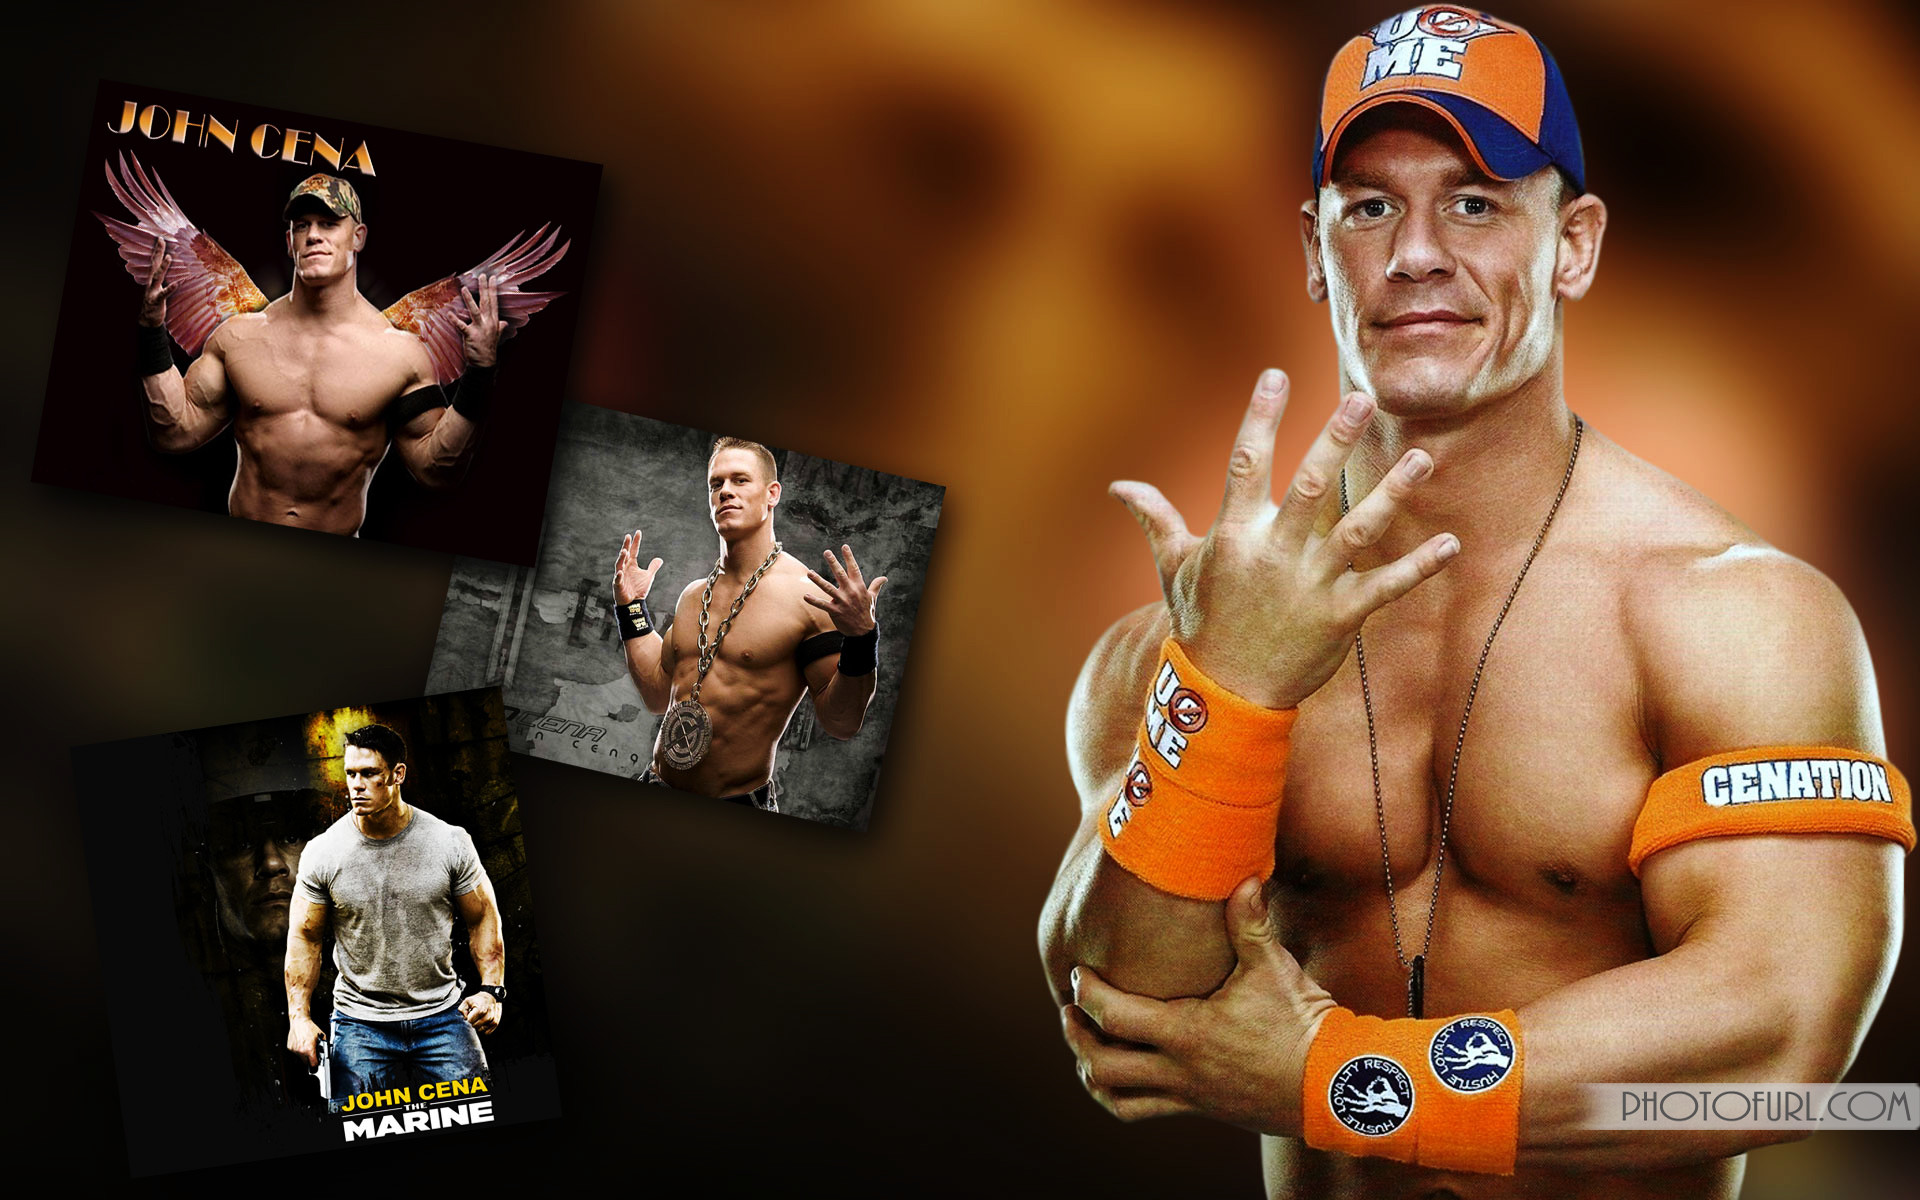 1920x1200 john cena wallpapers 2013